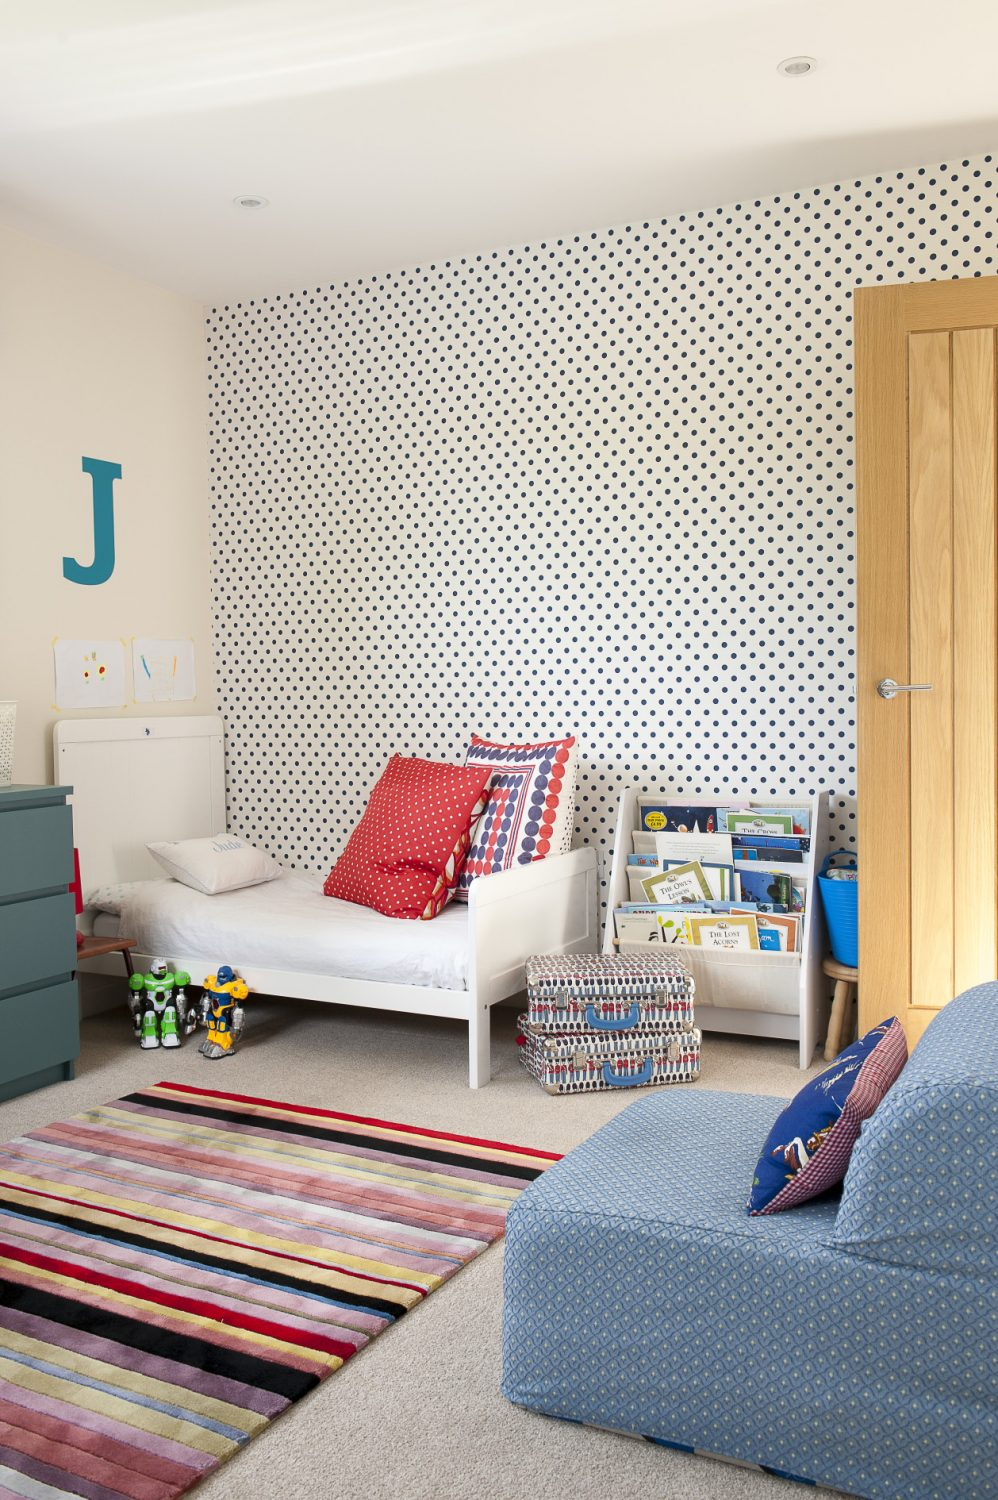 Jenny has papered the twins' room with navy polka dots